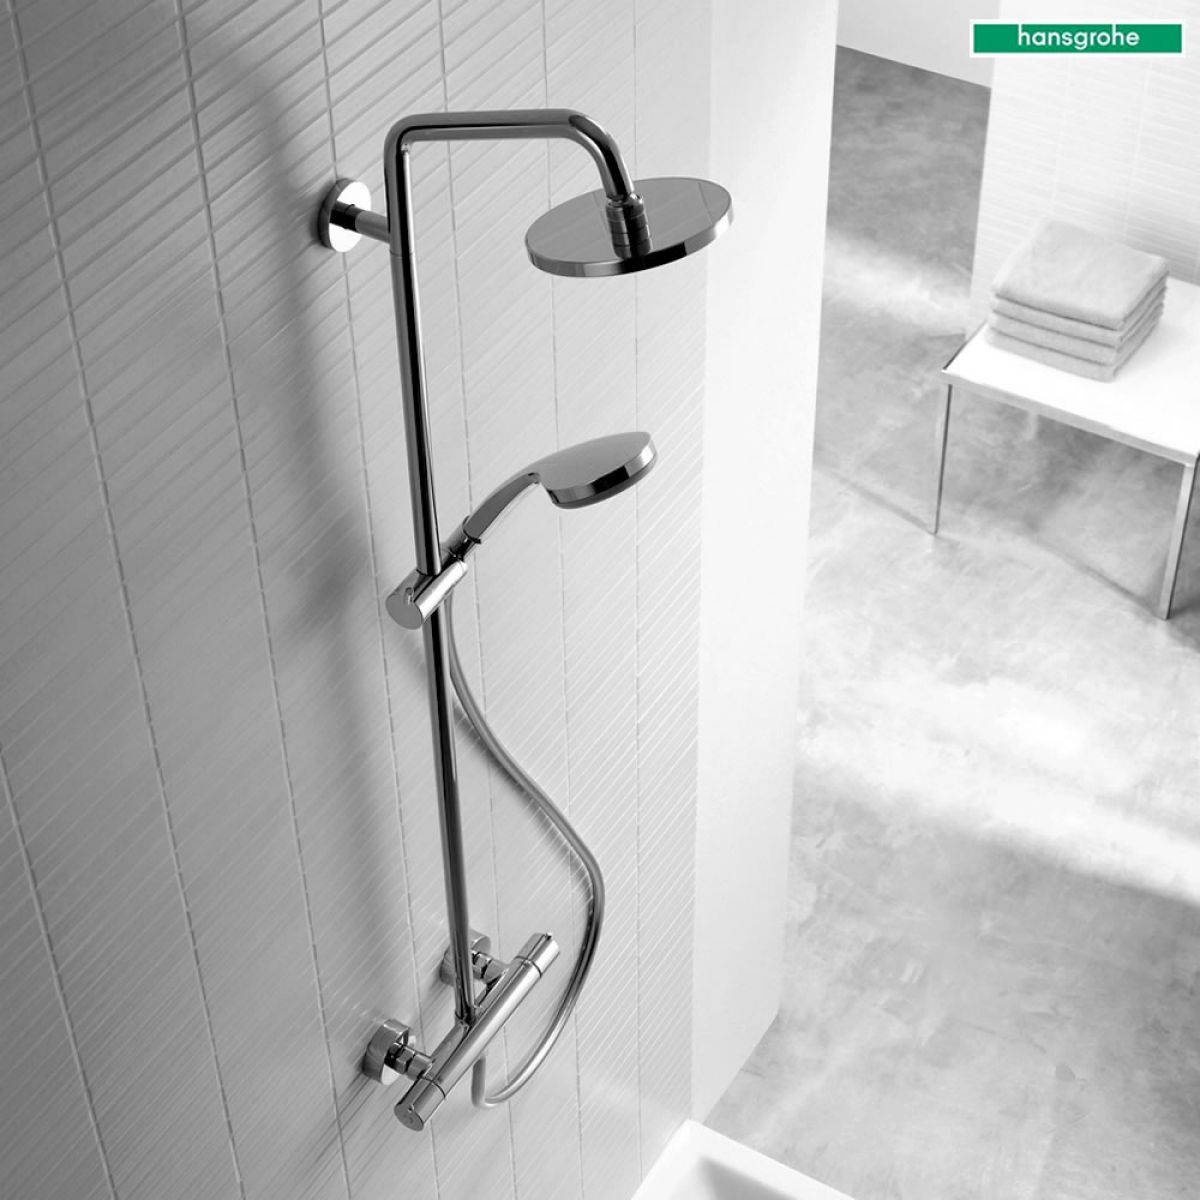 hansgrohe croma 160 showerpipe set 27135000 uk bathrooms. Black Bedroom Furniture Sets. Home Design Ideas